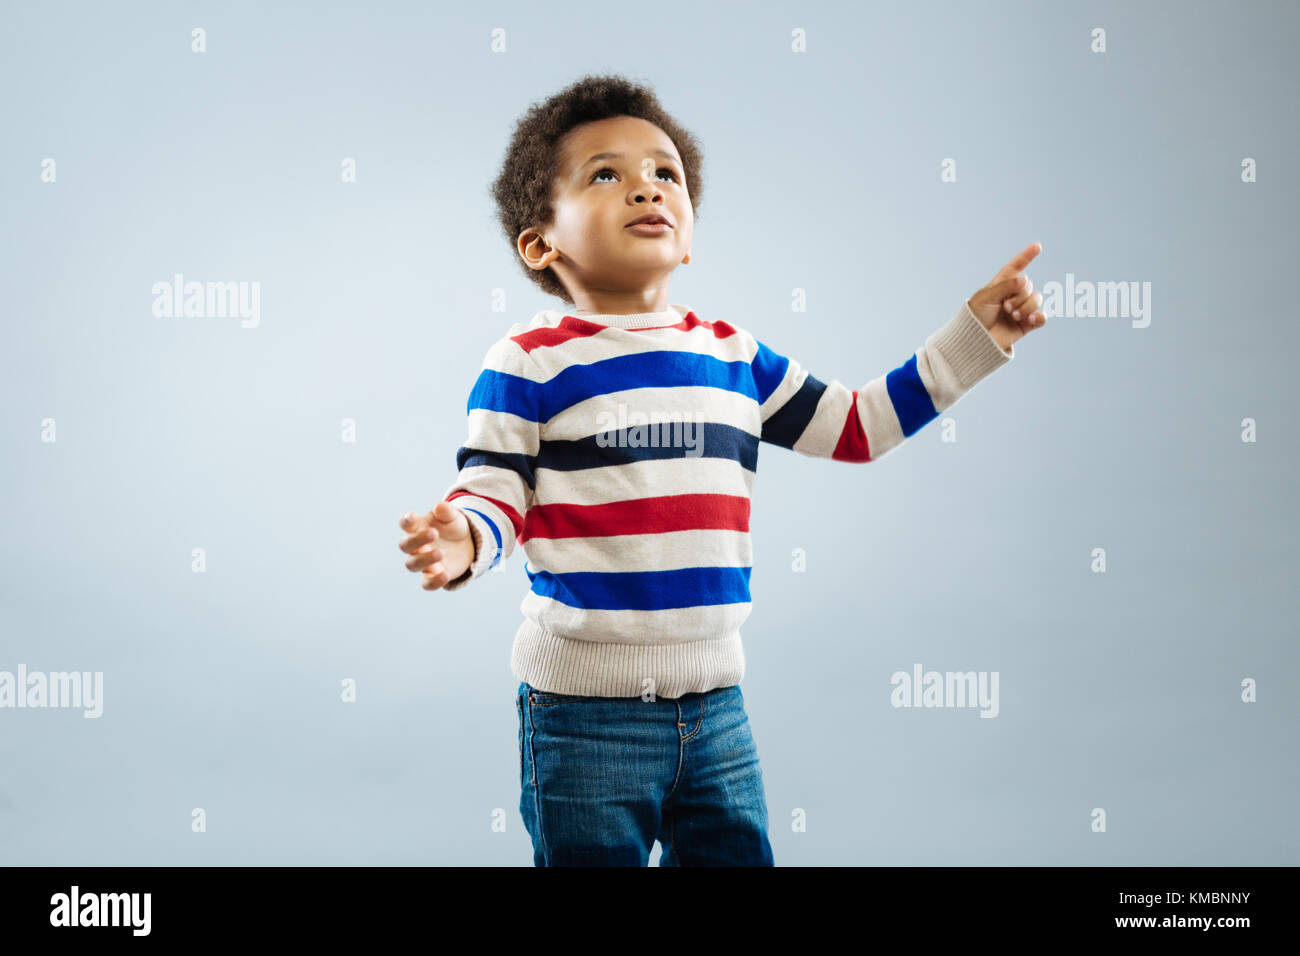 Enigmatical African child looking upwards - Stock Image